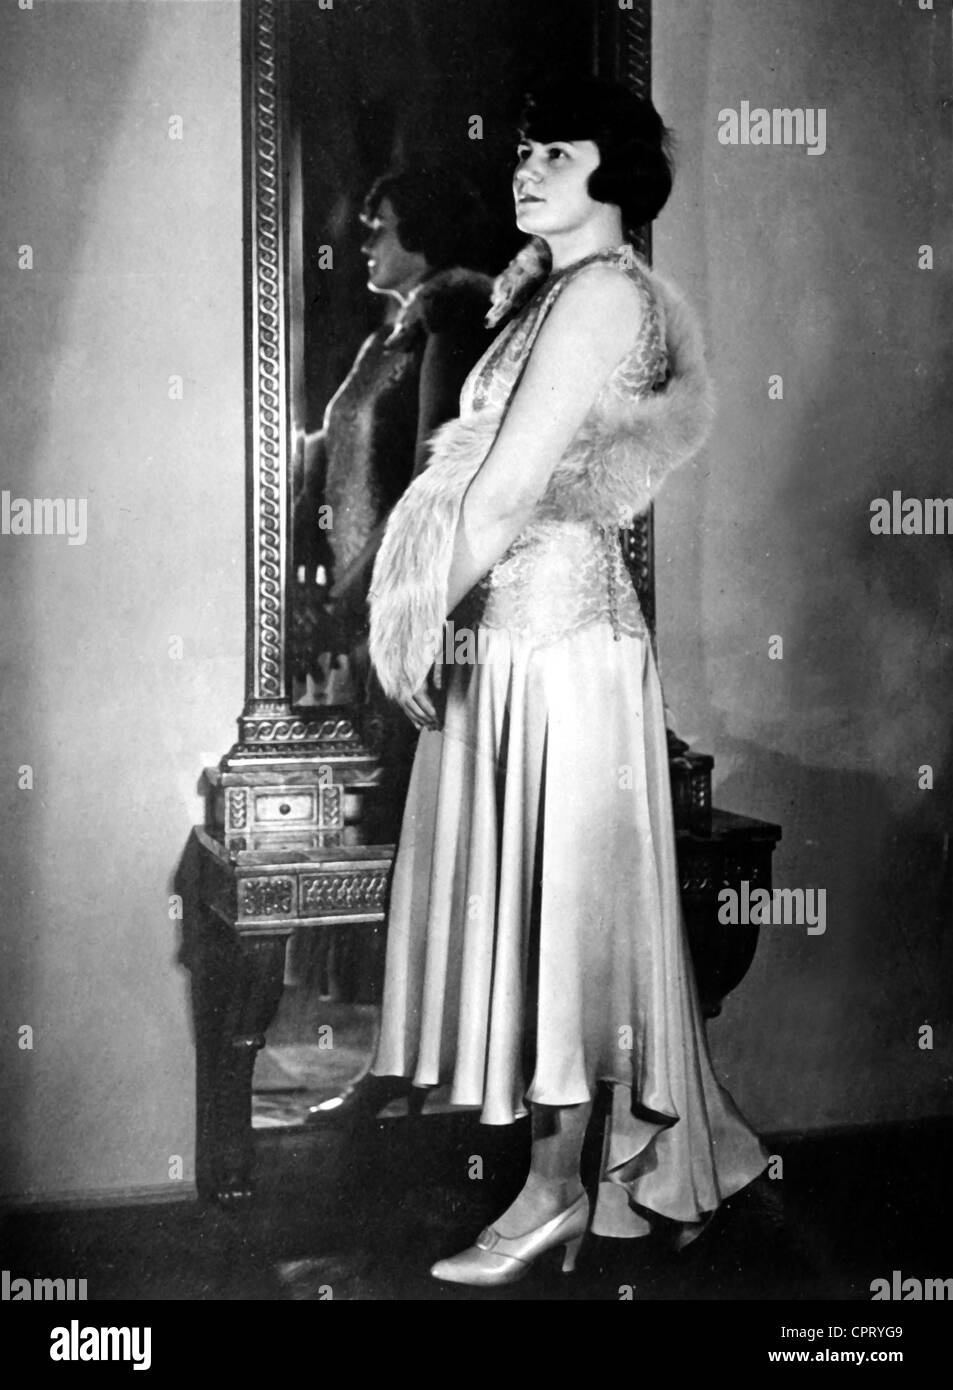 Raubal, Angela 'Geli', 4.6.1908 - 19.9.1931, niece by Adolf Hitler, full length, in front of the mirror, - Stock Image